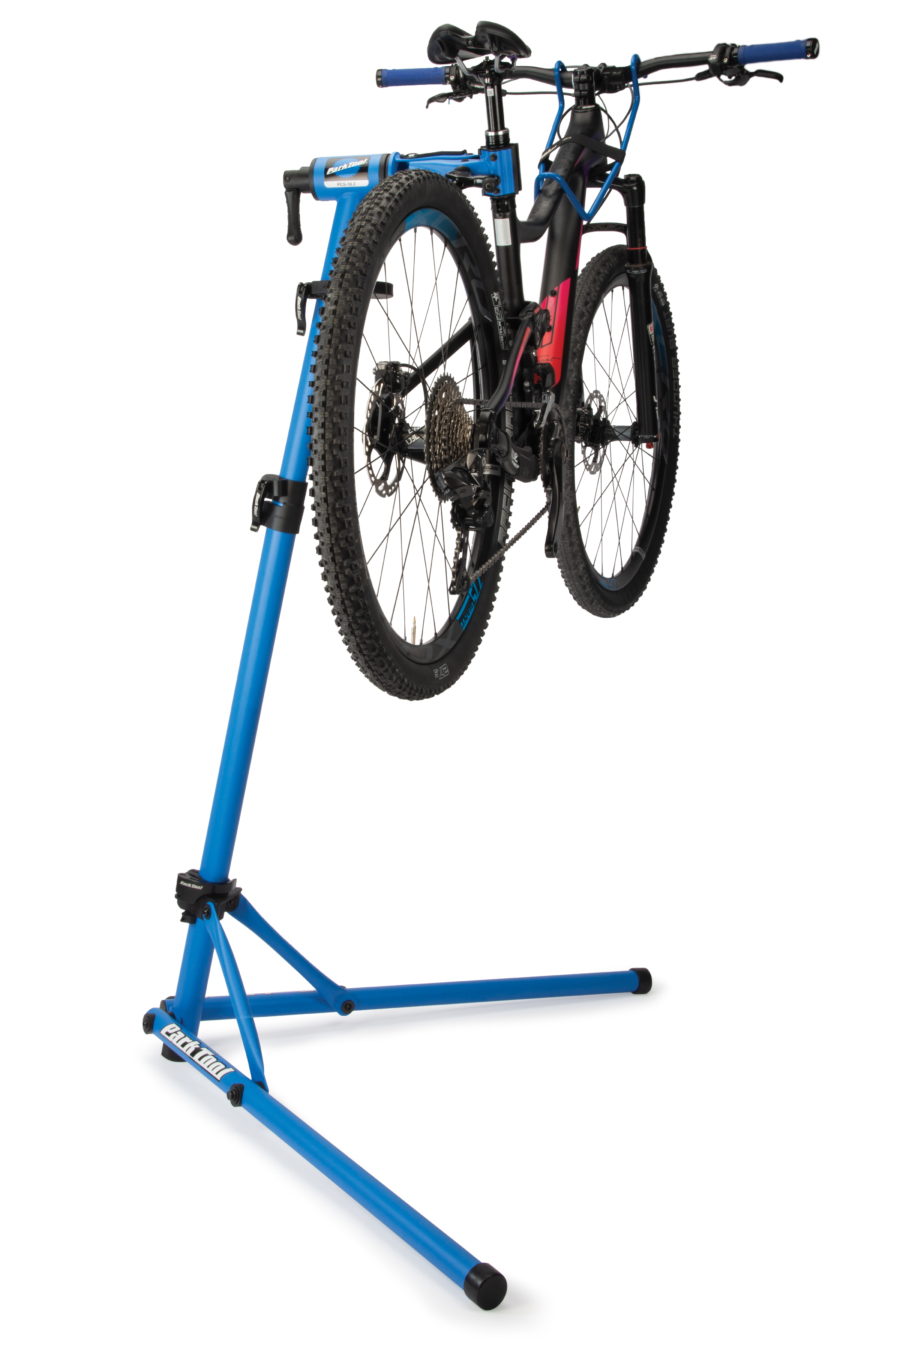 Park Tool PCS-10.2, Deluxe Home Mechanic Repair Stand with bike lifted, enlarged